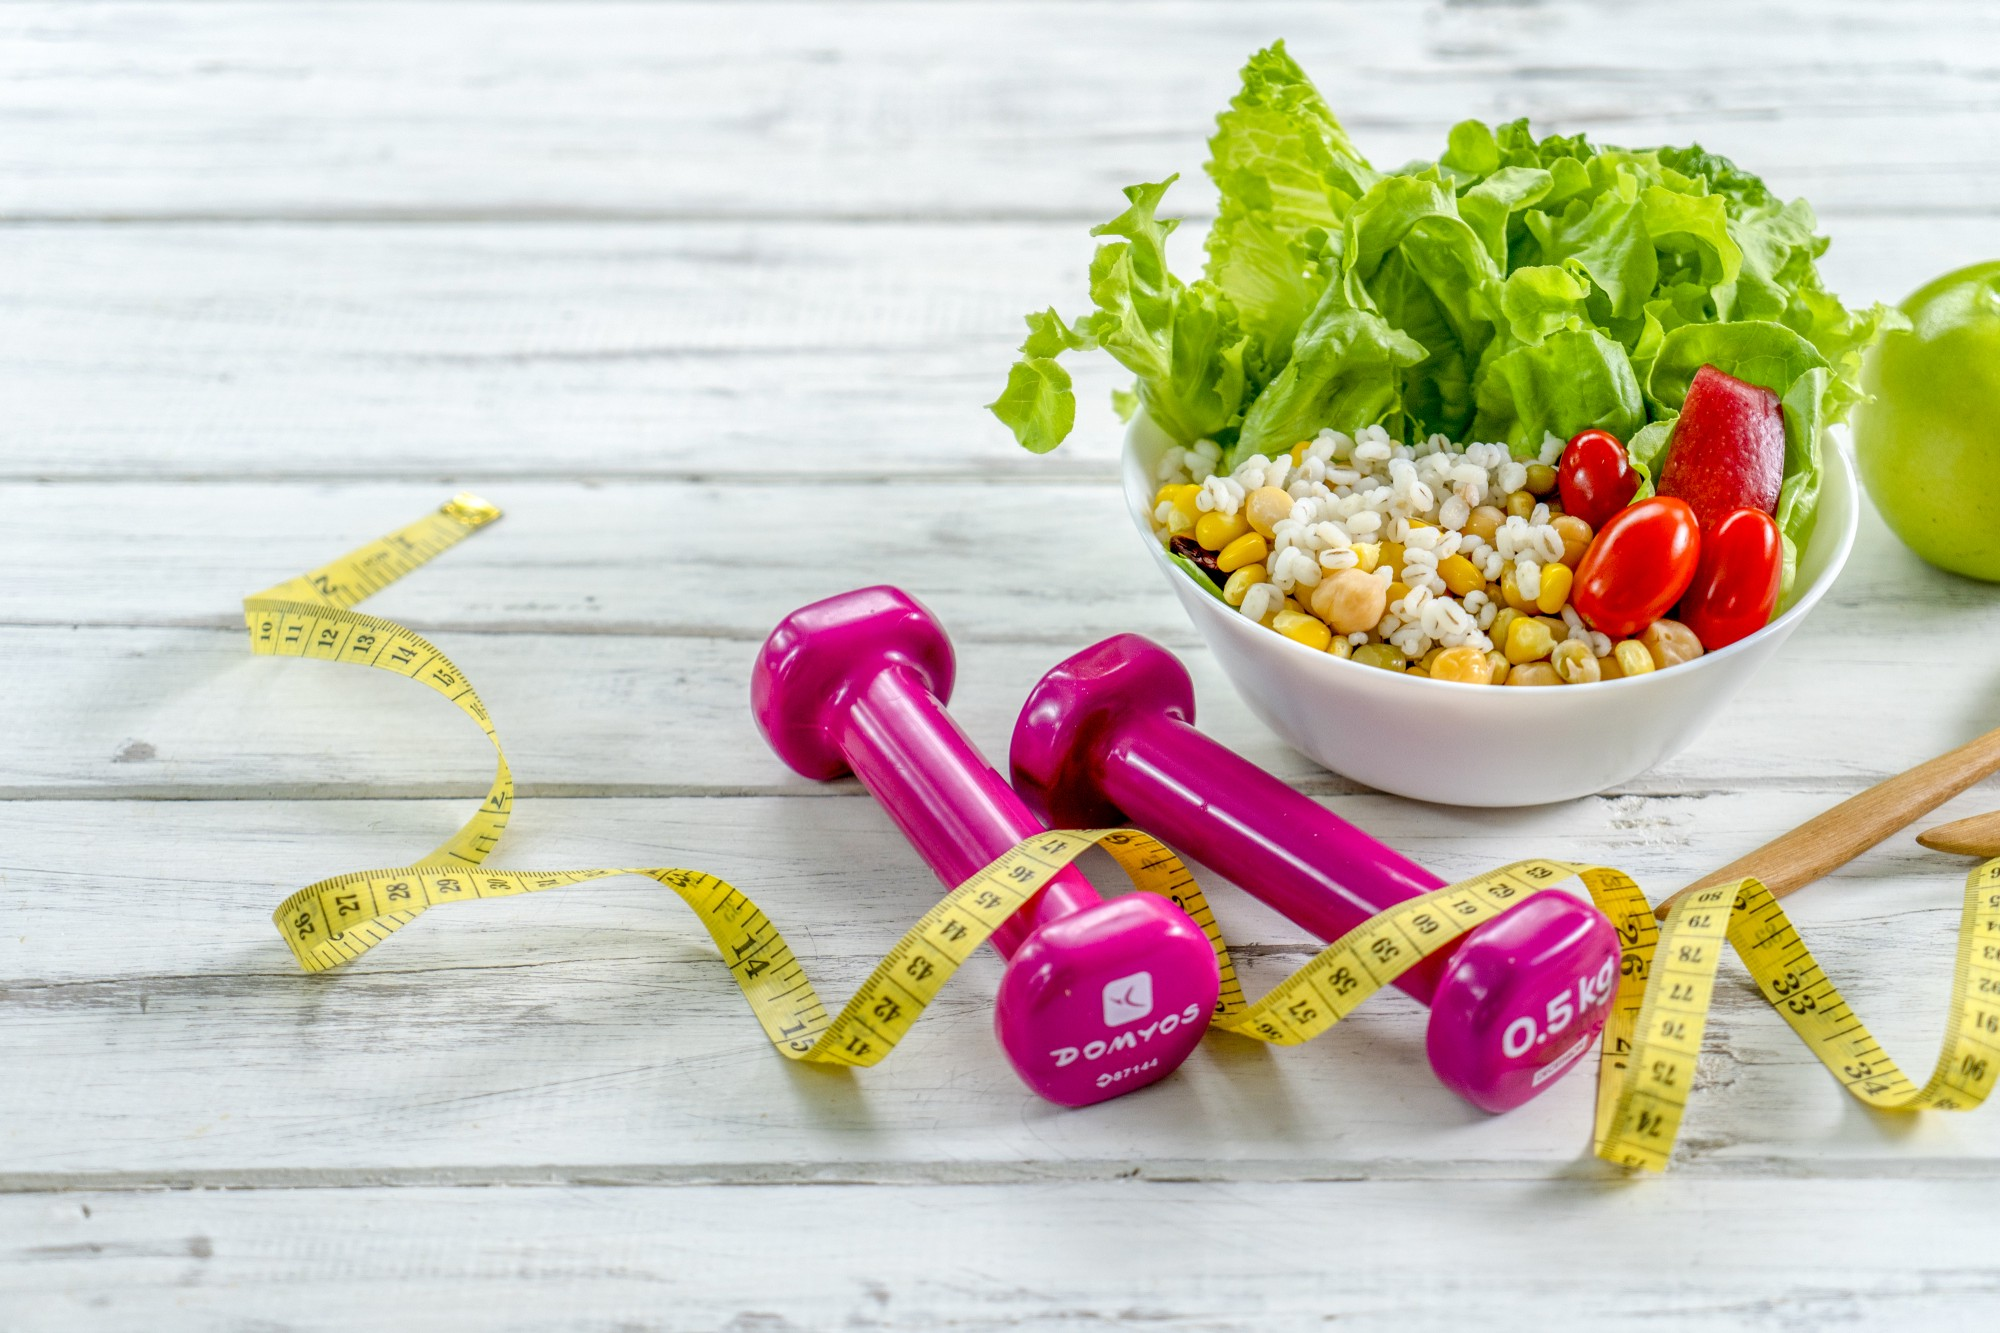 Two .5 kg dumbbells, measuring tape, and a salad on a rustic wooden table.